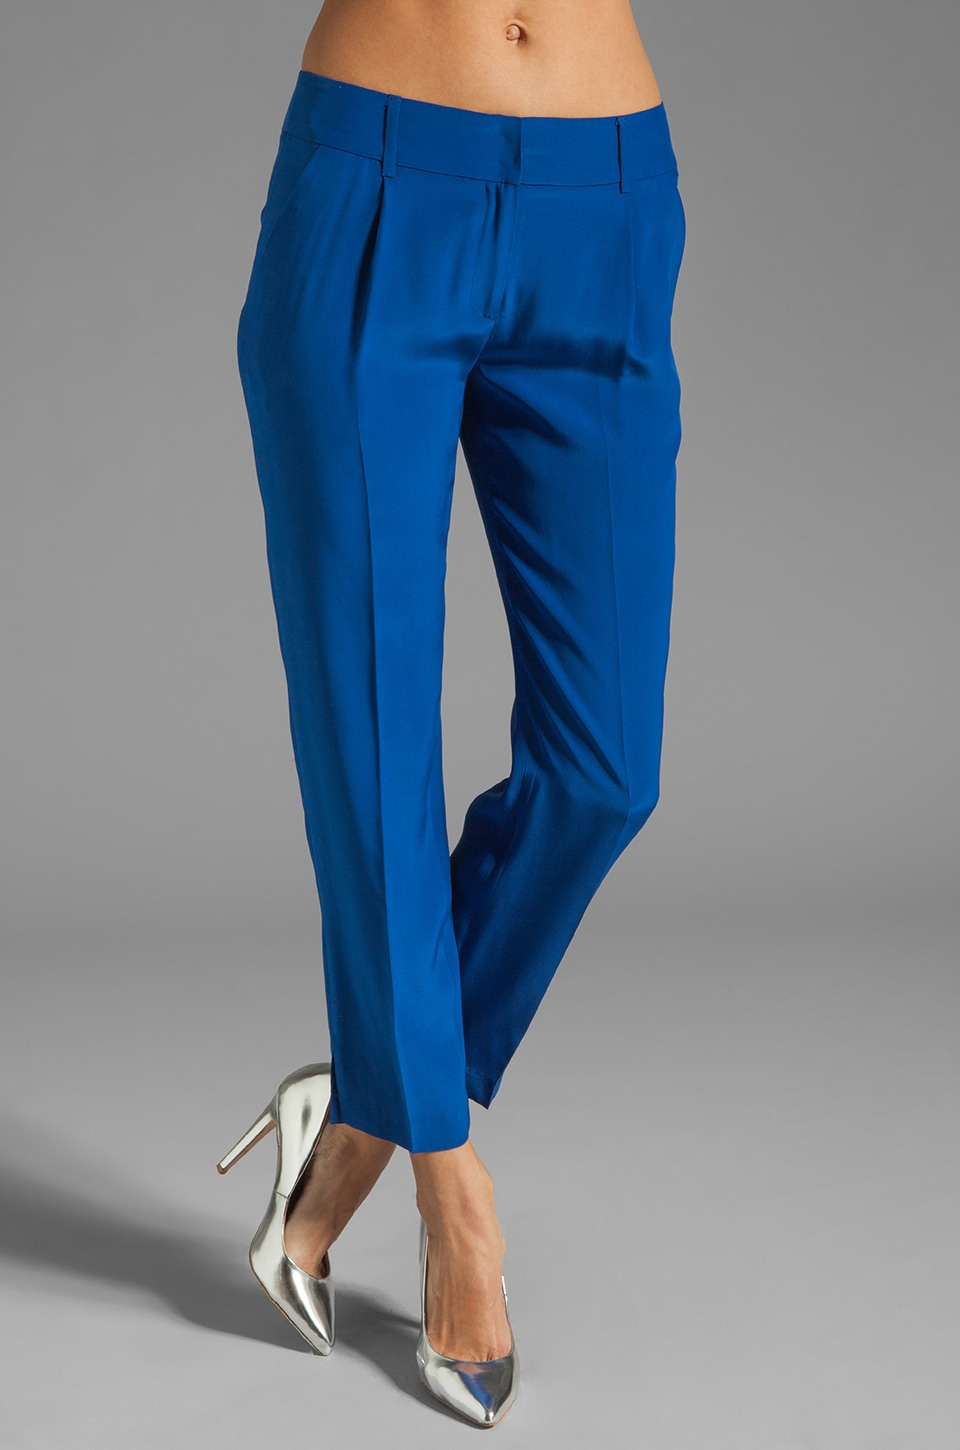 MILLY Solid Silk Nicole Pant in Cobalt